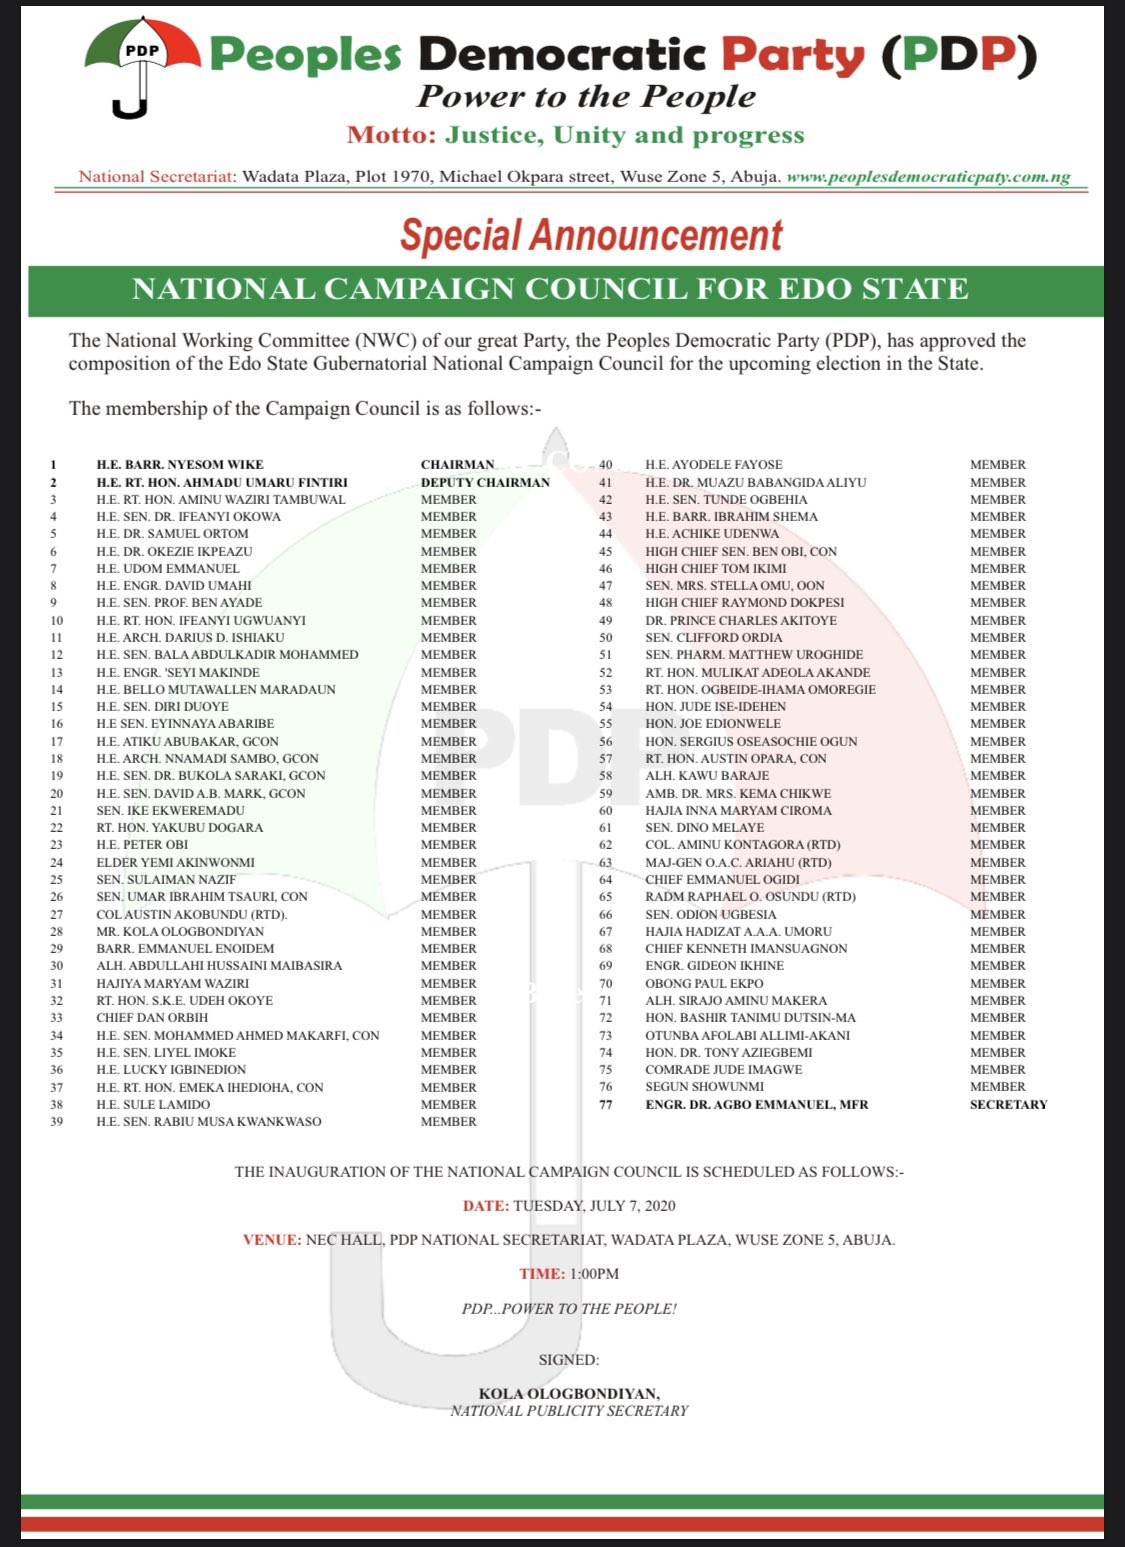 Rivers Governor, Wike Leads 77-Member PDP Campaign Council For Edo Governorship Election 2